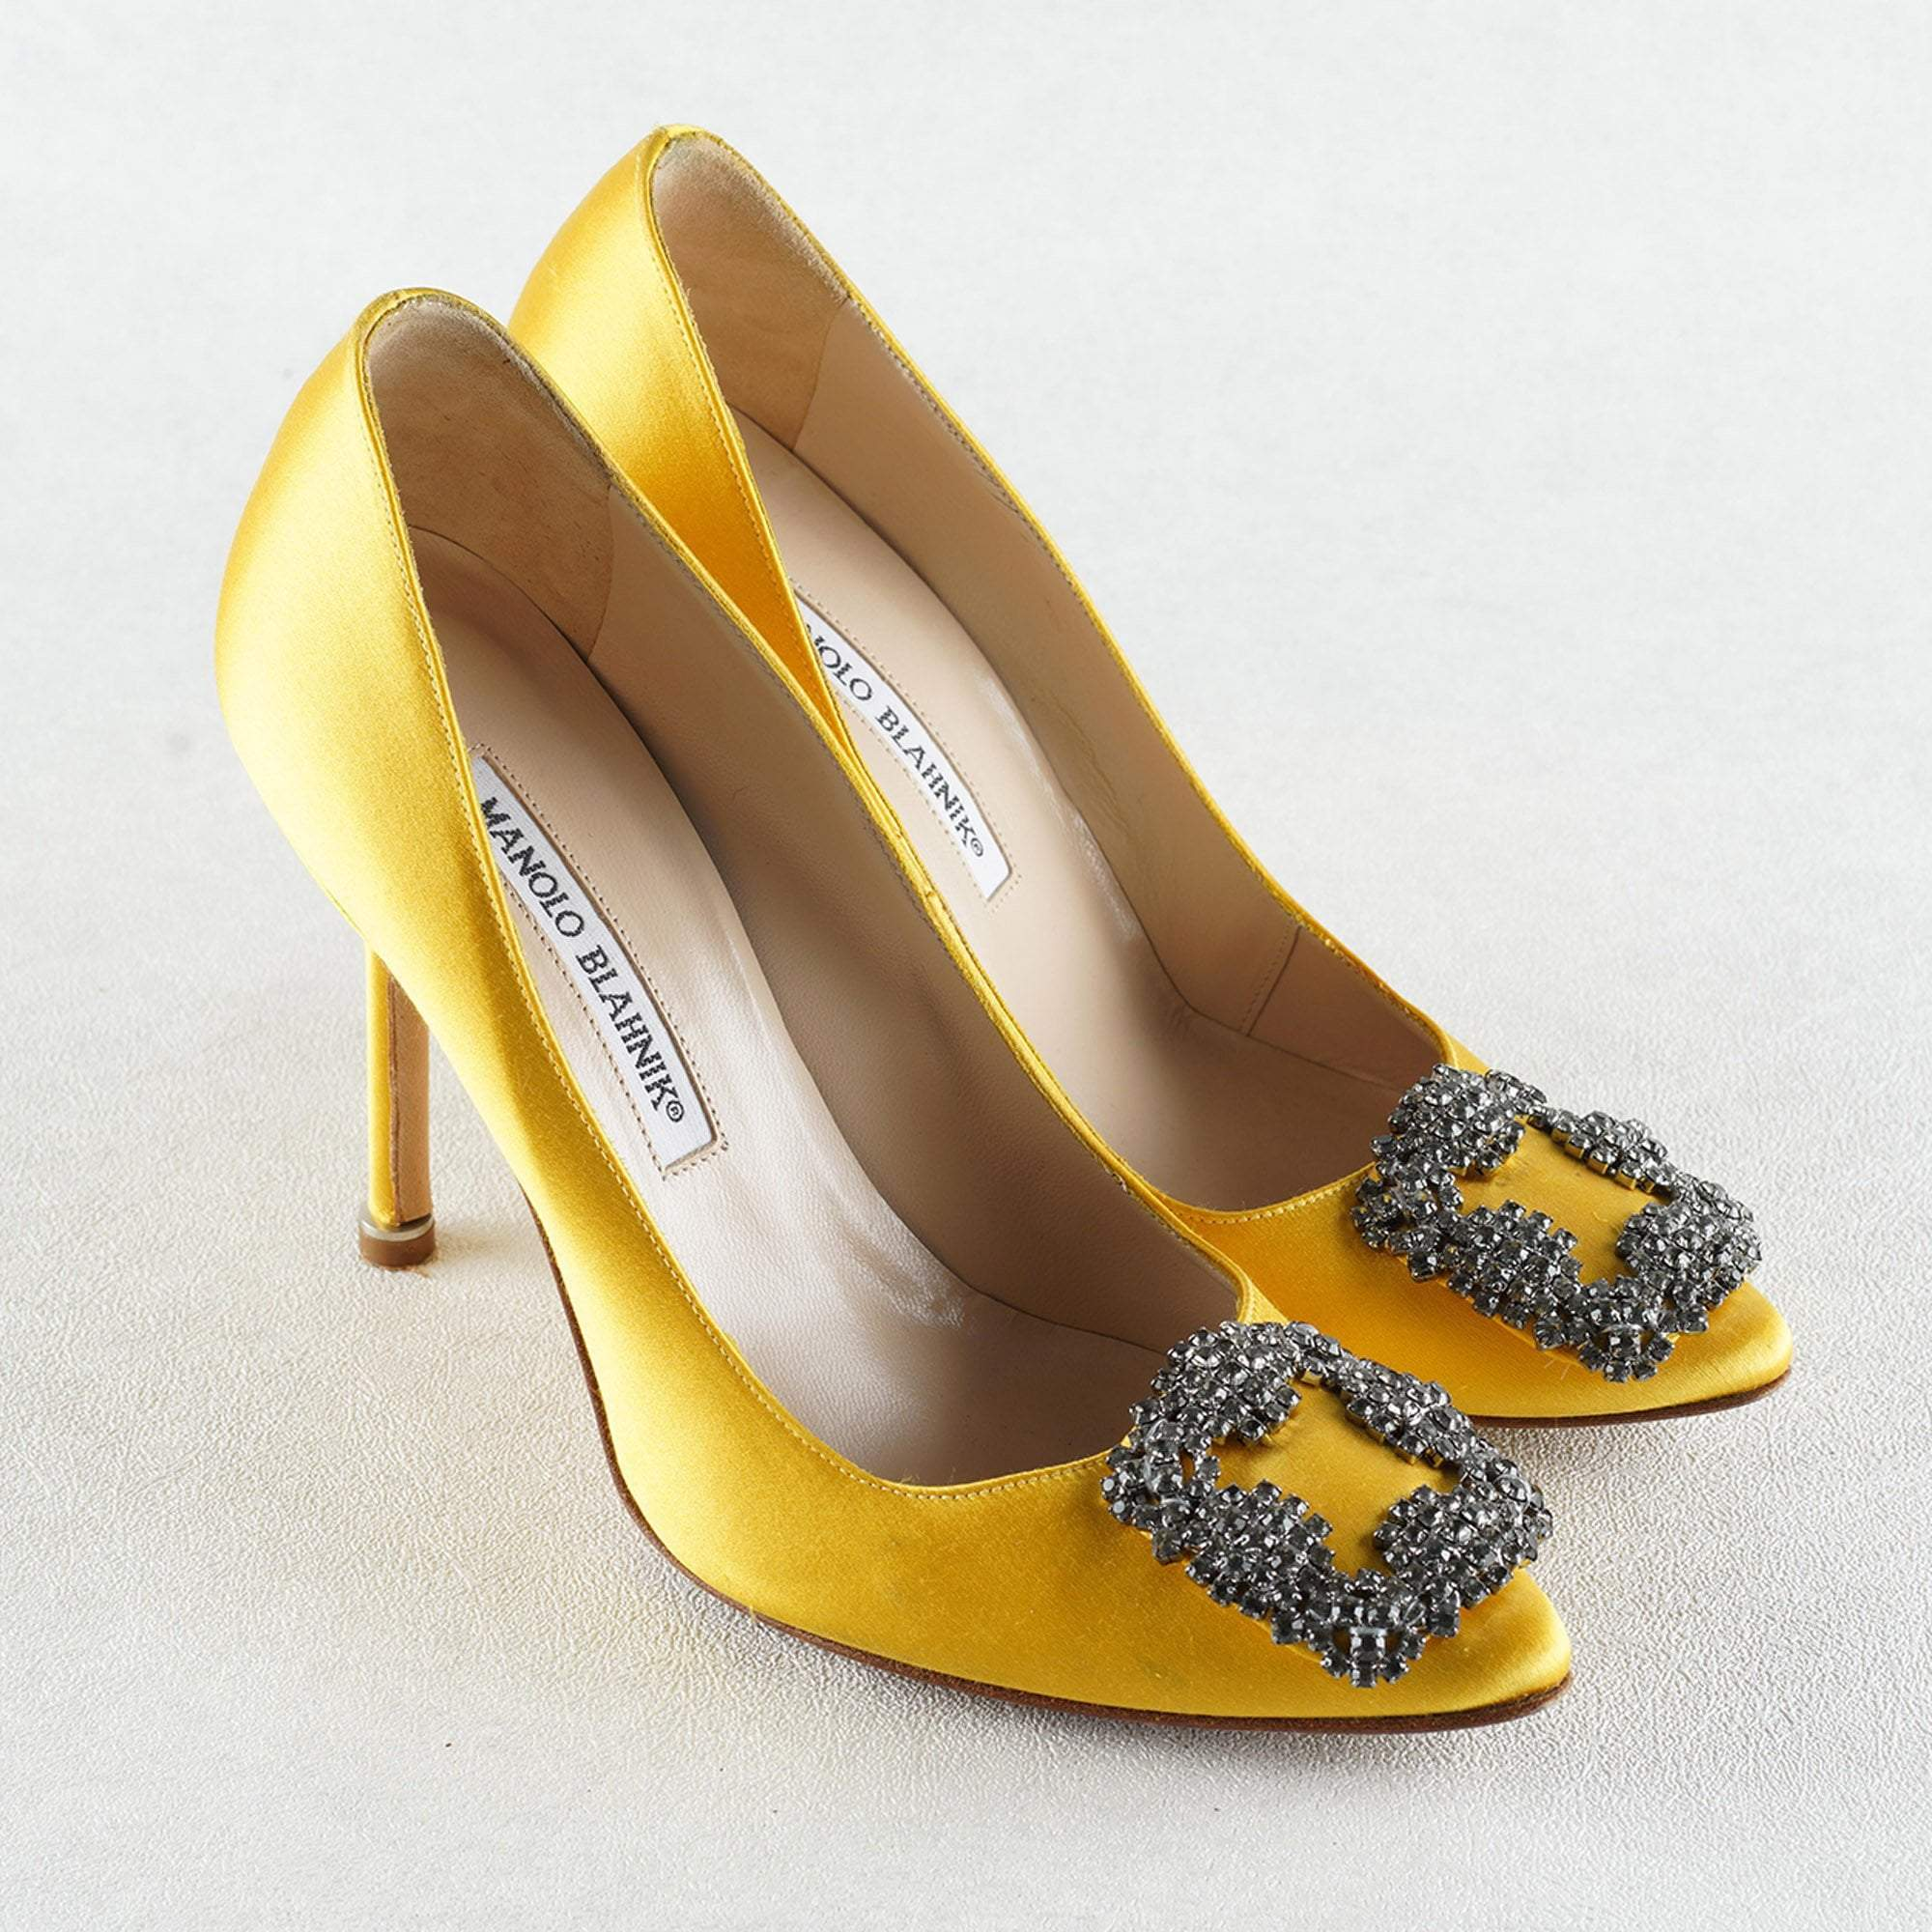 e9211abea2f8 Manolo Blahnik Yellow Satin Hangisi Crystal Embellished Pumps ...